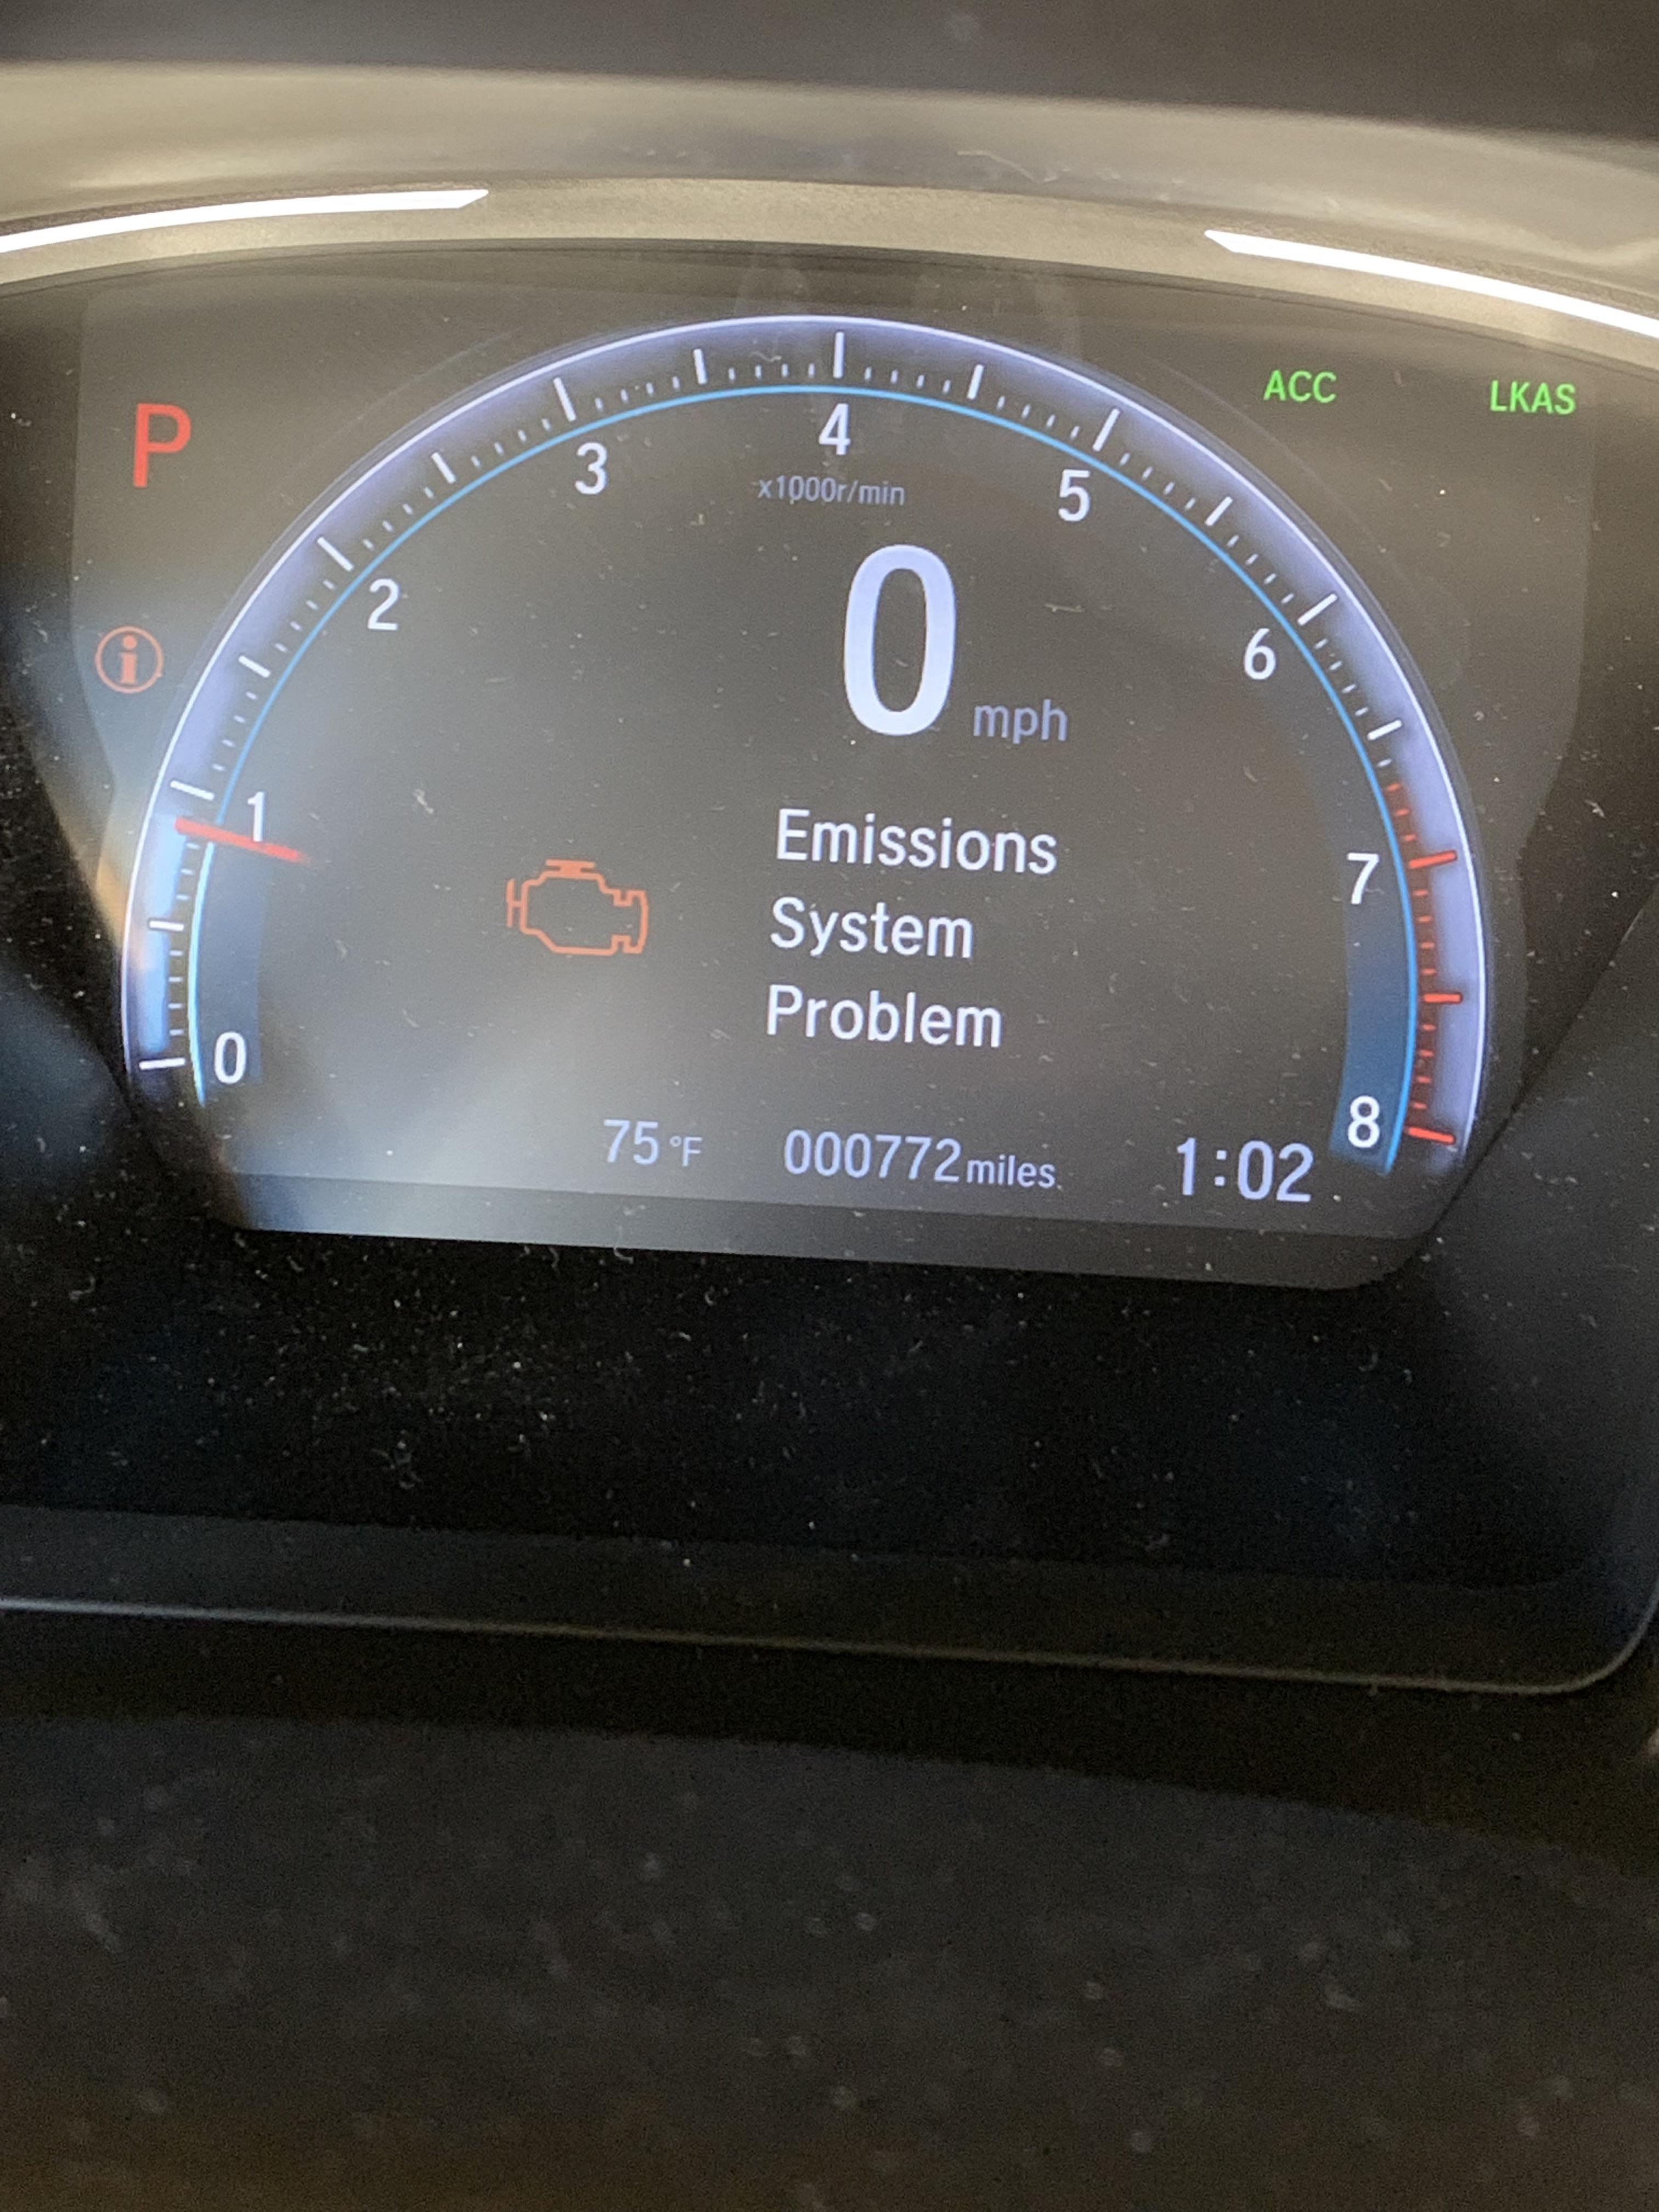 How To Reset Tire Pressure Light On Honda Civic 2016 : reset, pressure, light, honda, civic, Honda, Civic:, Civic, Security, System, Reset